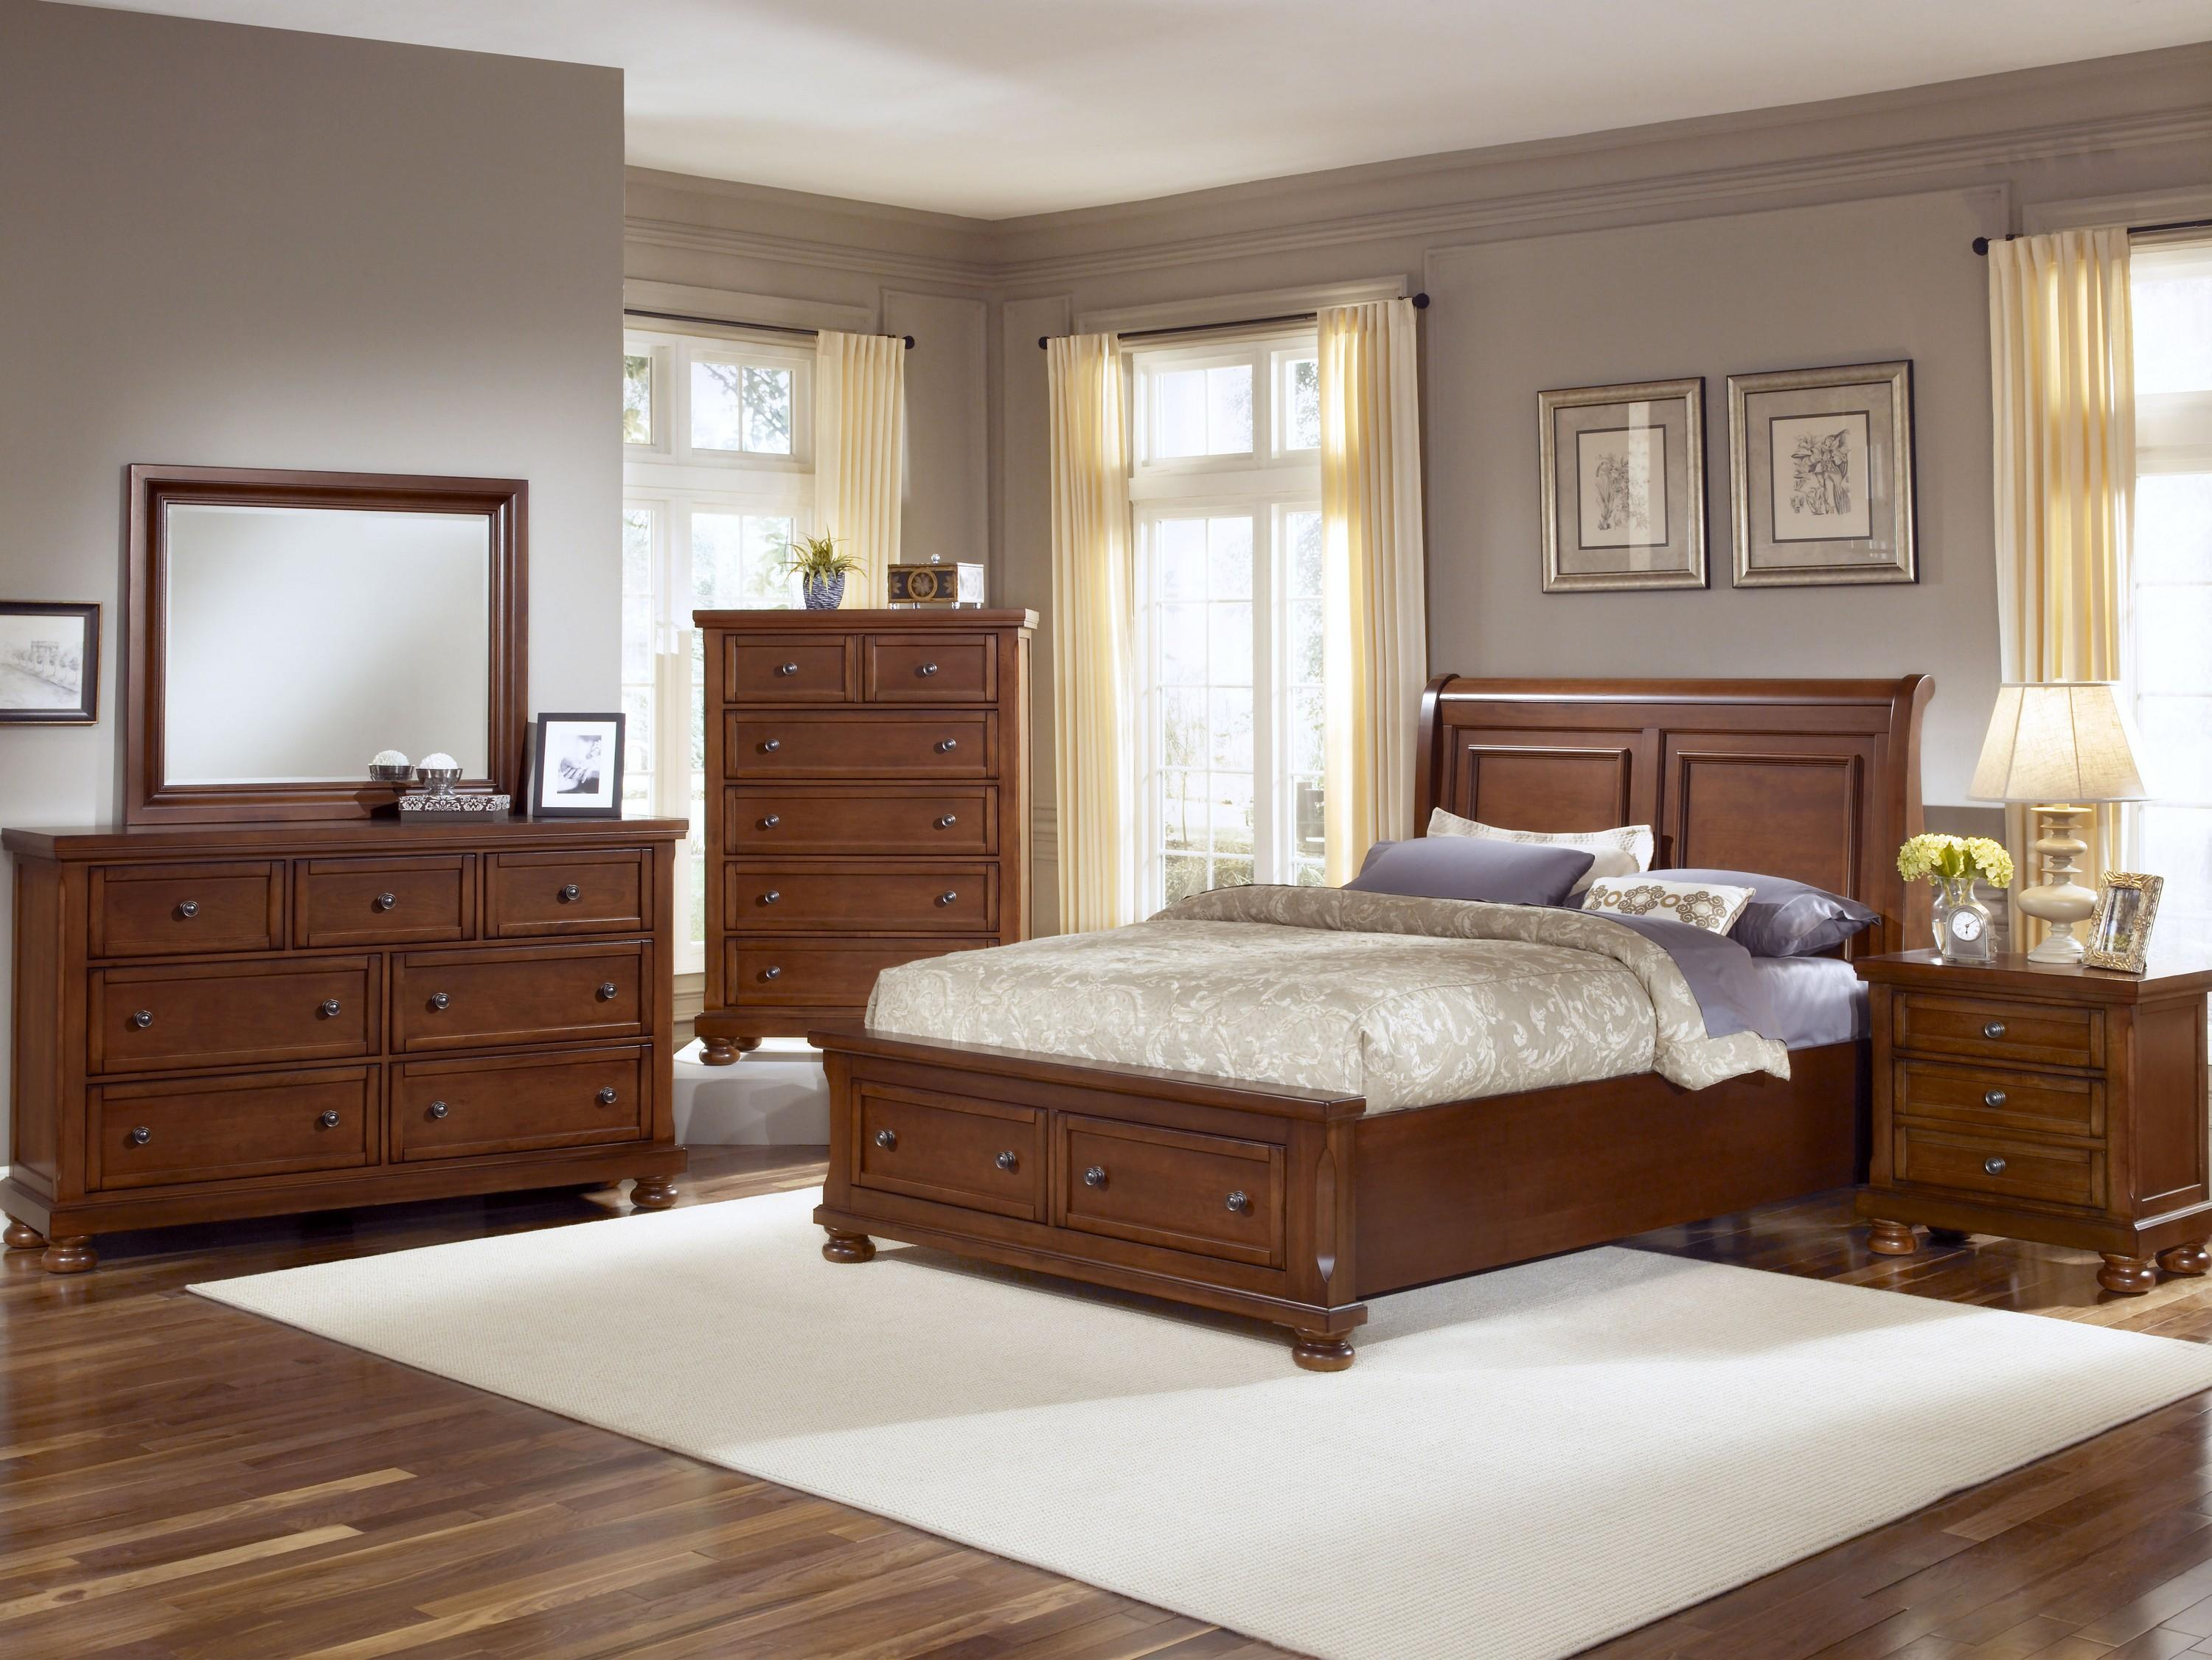 Vaughan Bassett Reflections King Bedroom Group - Item Number: 532 K Bedroom Group 1